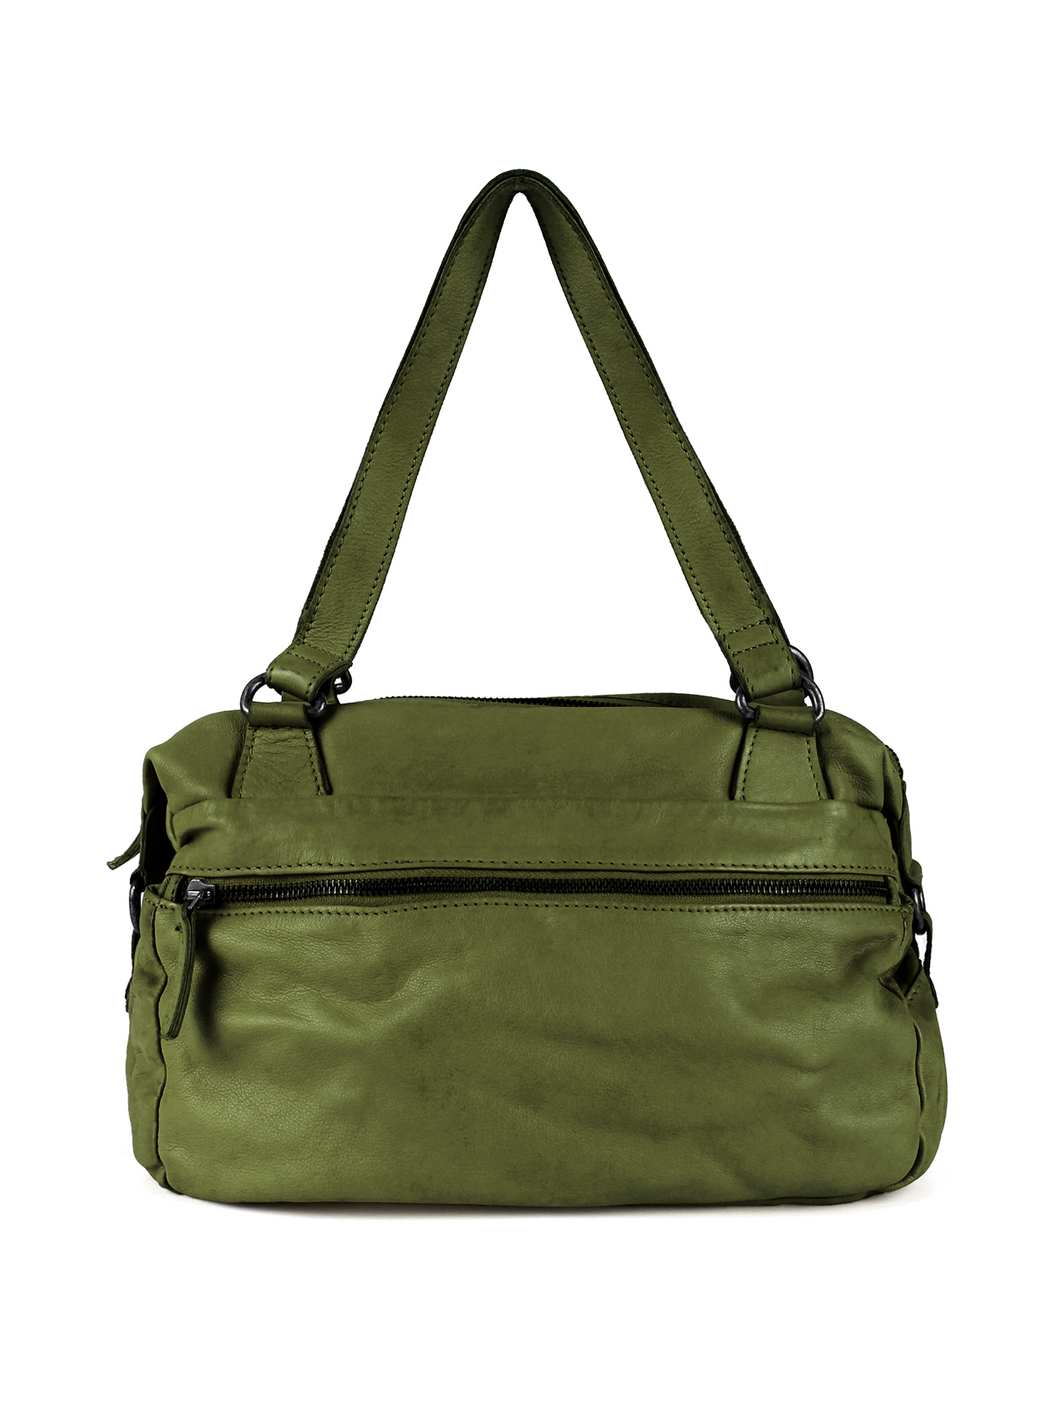 DSTRCT HARRINGTON ROAD HANDBAG GREEN 354530.80